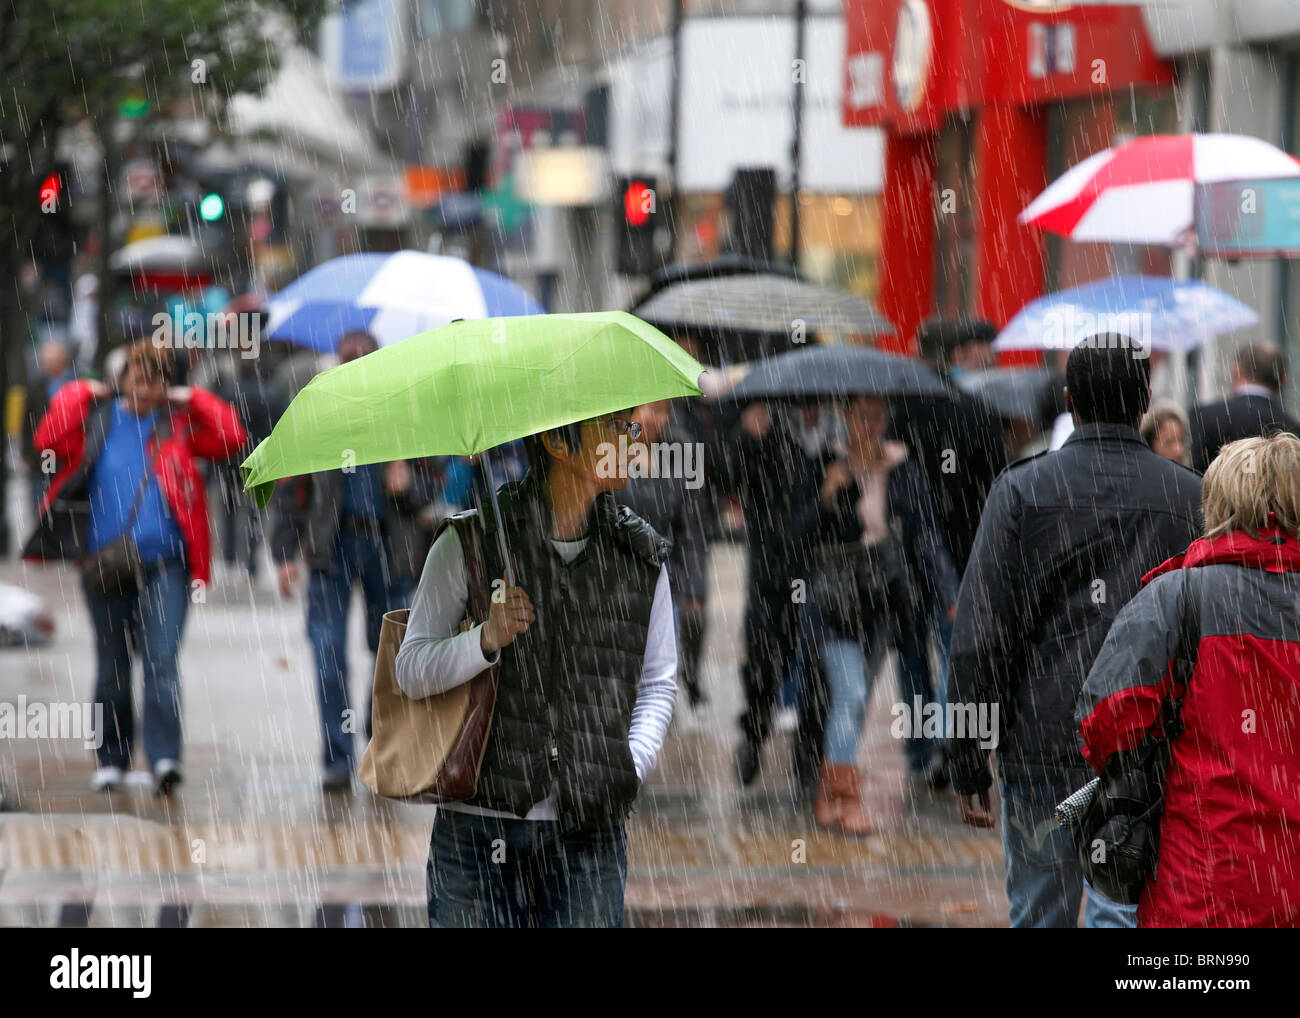 Shoppers on a cold and rainy day. - Stock Image